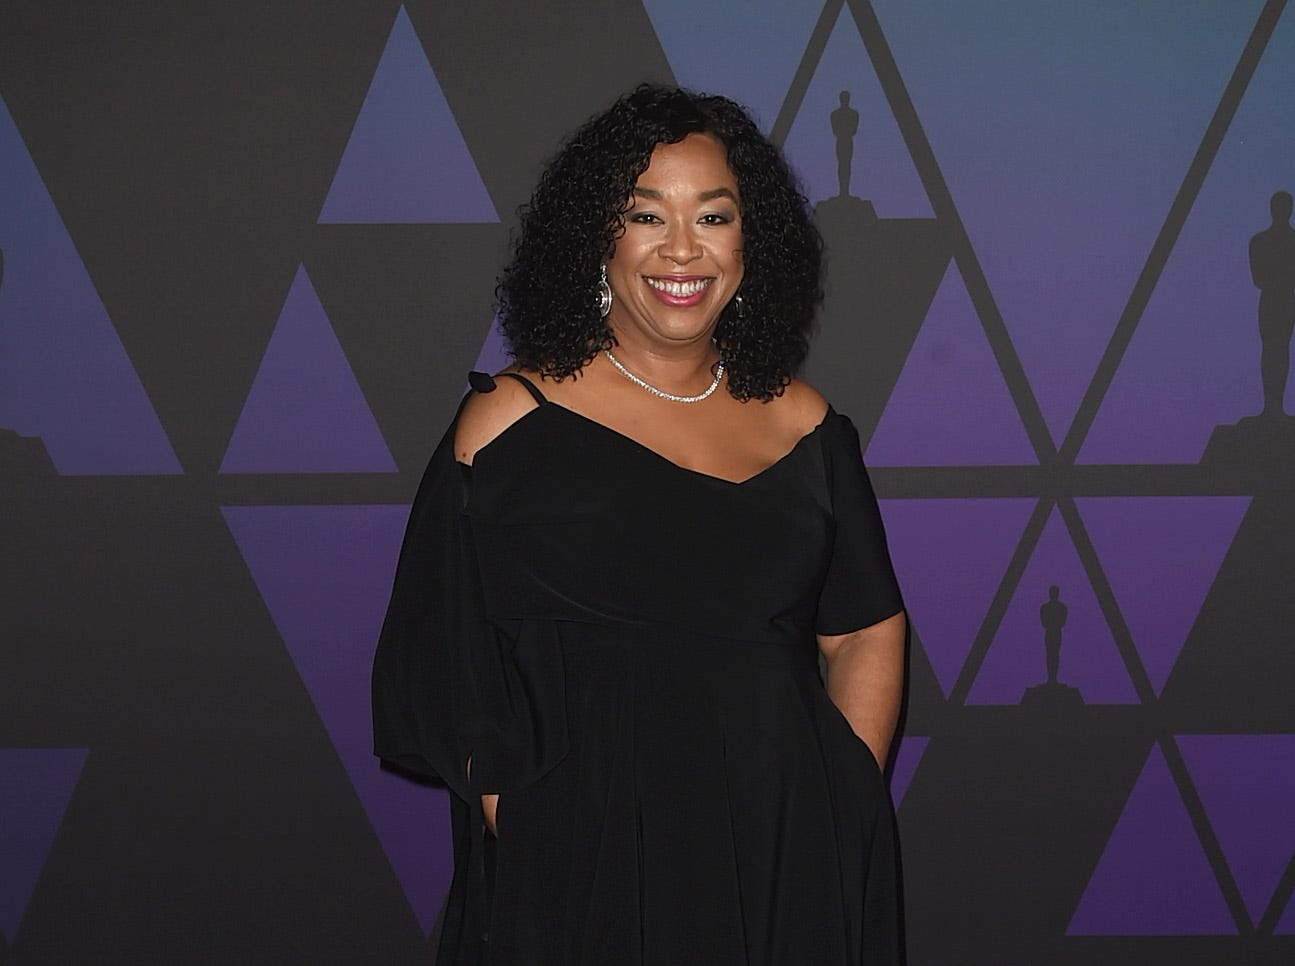 HOLLYWOOD, CA - NOVEMBER 18:  Shonda Rhimes attends the Academy of Motion Picture Arts and Sciences' 10th annual Governors Awards at The Ray Dolby Ballroom at Hollywood & Highland Center on November 18, 2018 in Hollywood, California.  (Photo by Kevin Winter/Getty Images) ORG XMIT: 775223509 ORIG FILE ID: 1063384018